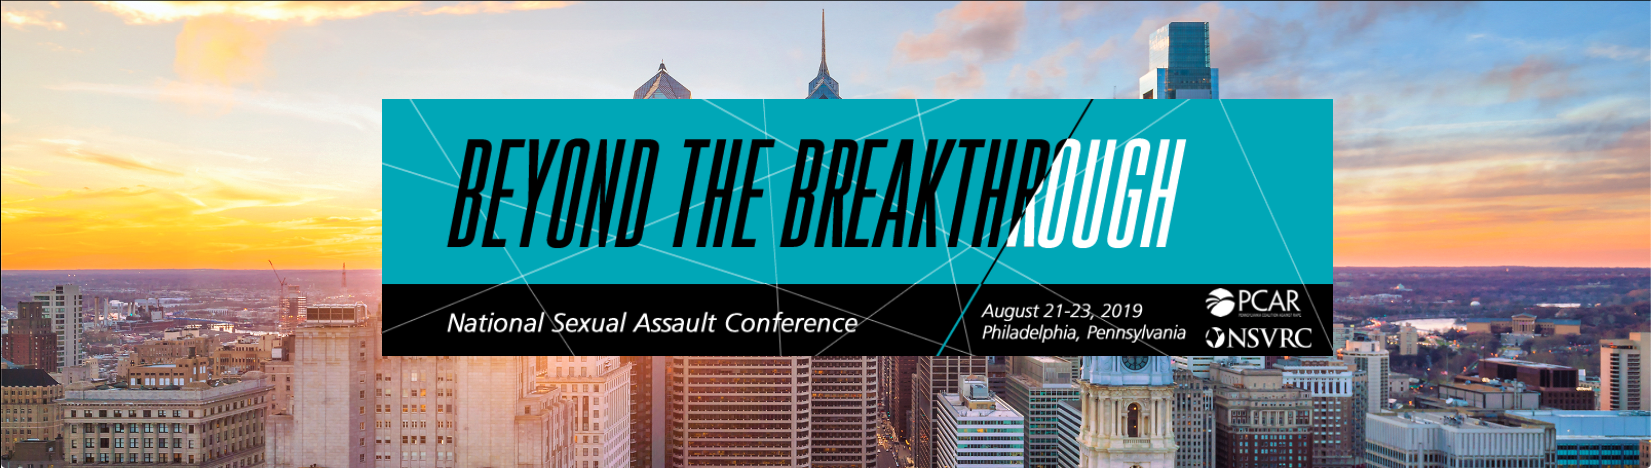 beyond the breakthrough image for the 2019 National Sexual Assault Conference